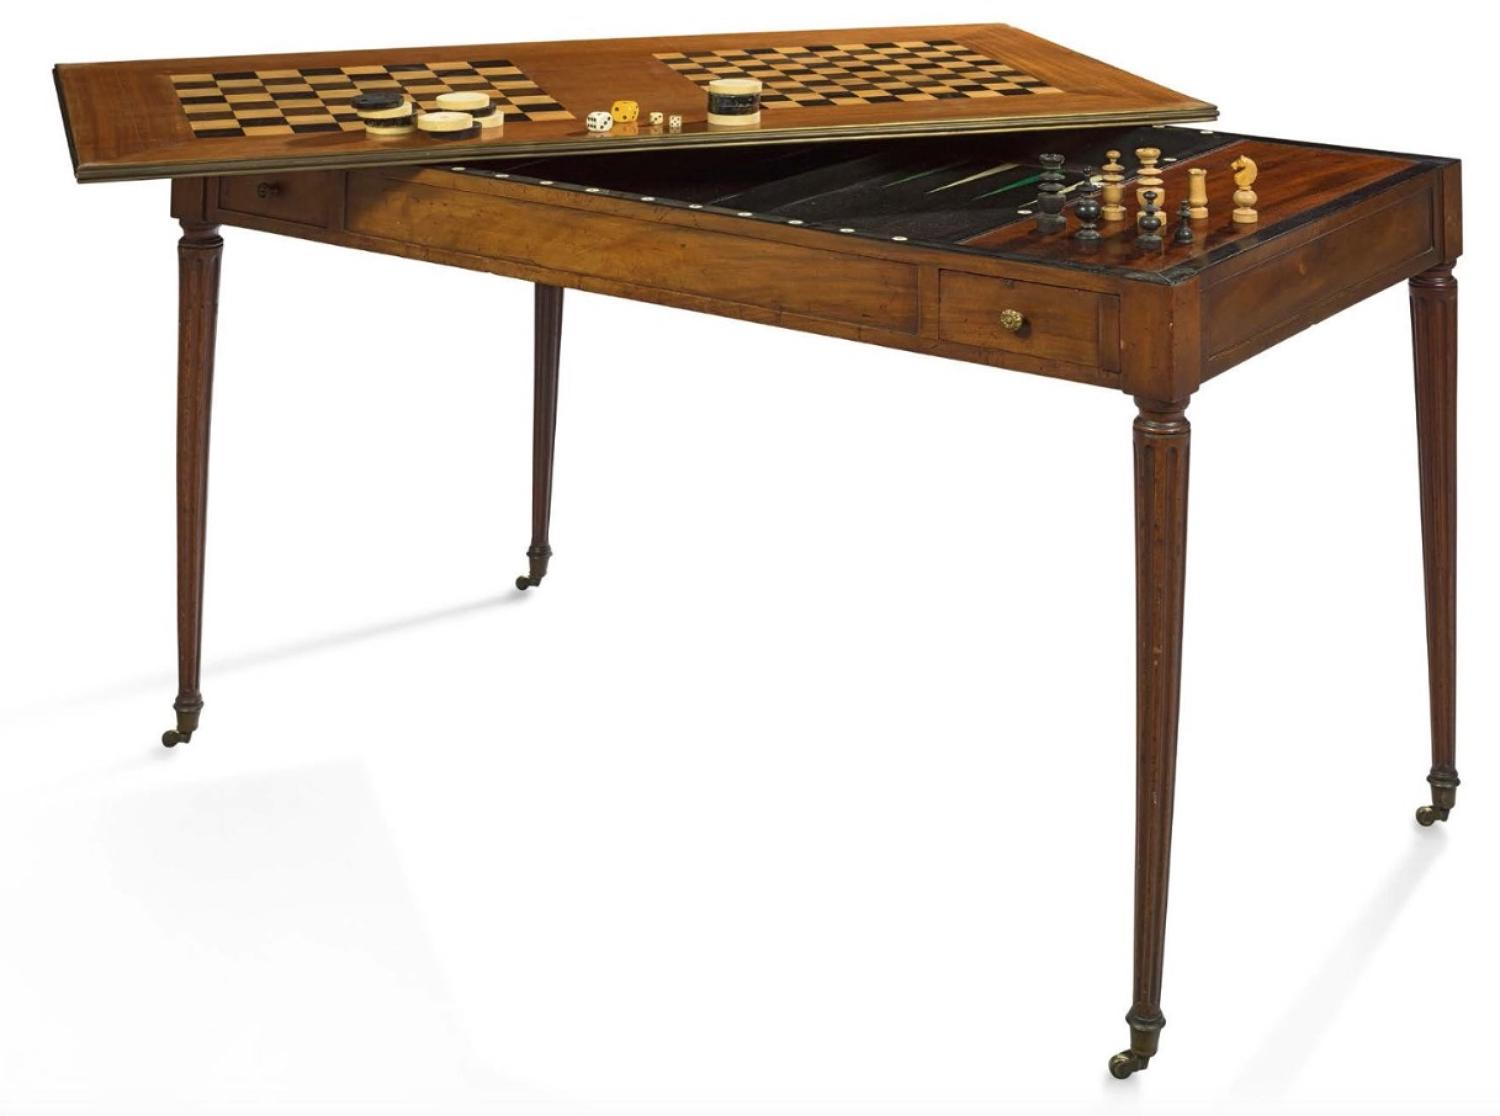 Louis XVI mahogany Tric/Trac table